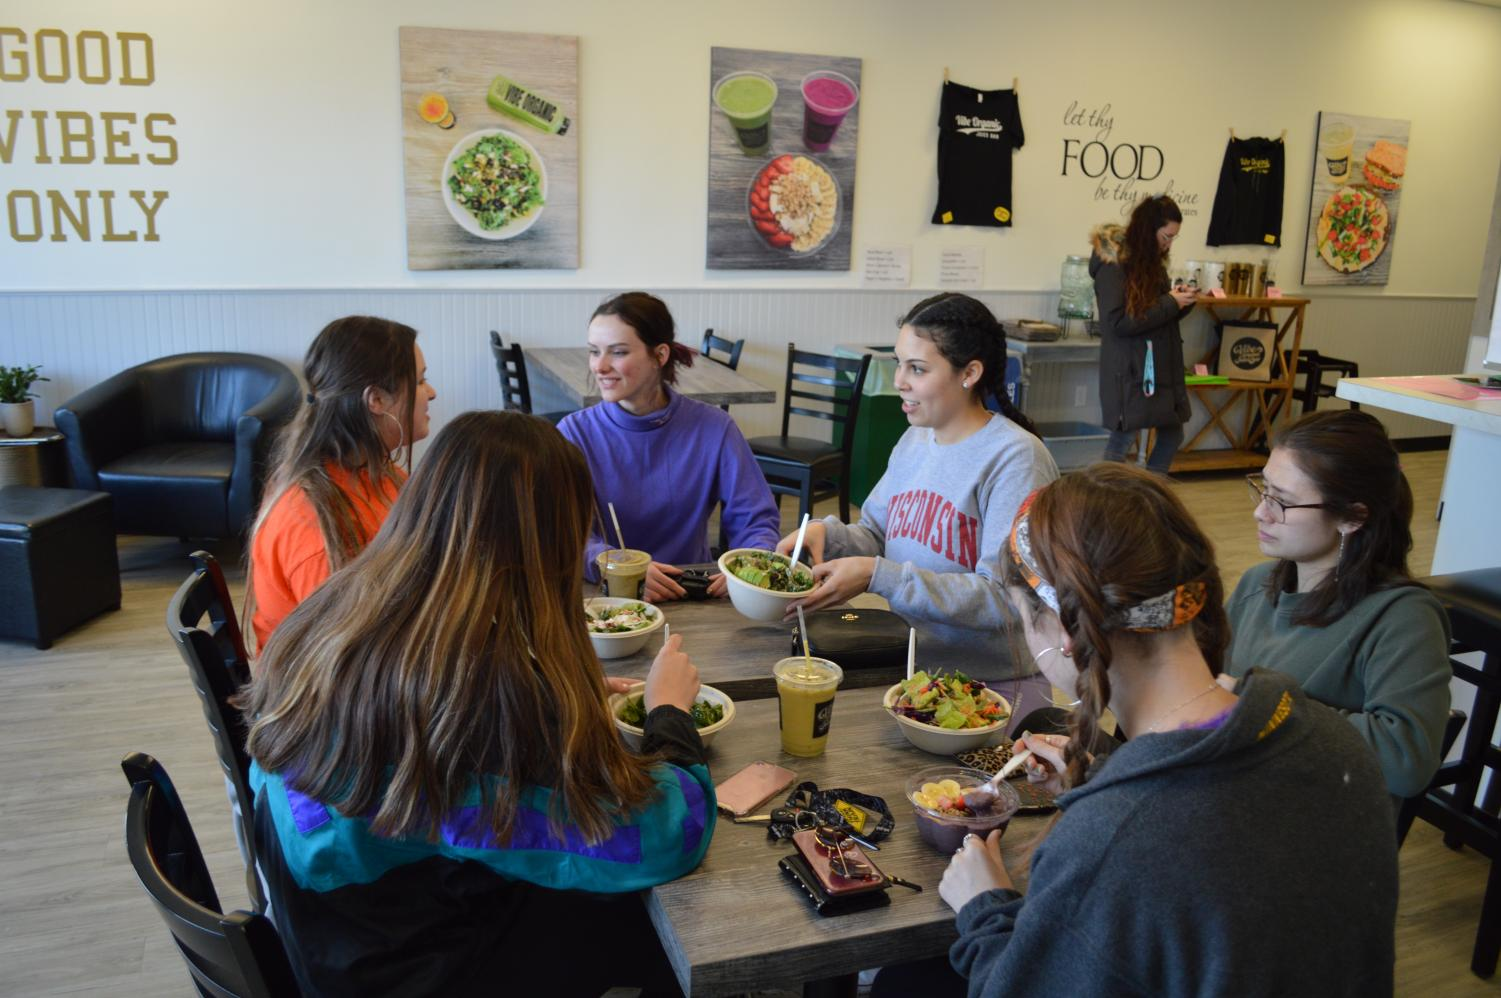 Senior Vegan Club president Lara Garcia speaks to senior members Cecelia Brown and Bryn O'Gara during their meeting at Vibe Organic Juice Bar March 6. According to Garcia, it was the final meeting of the year.